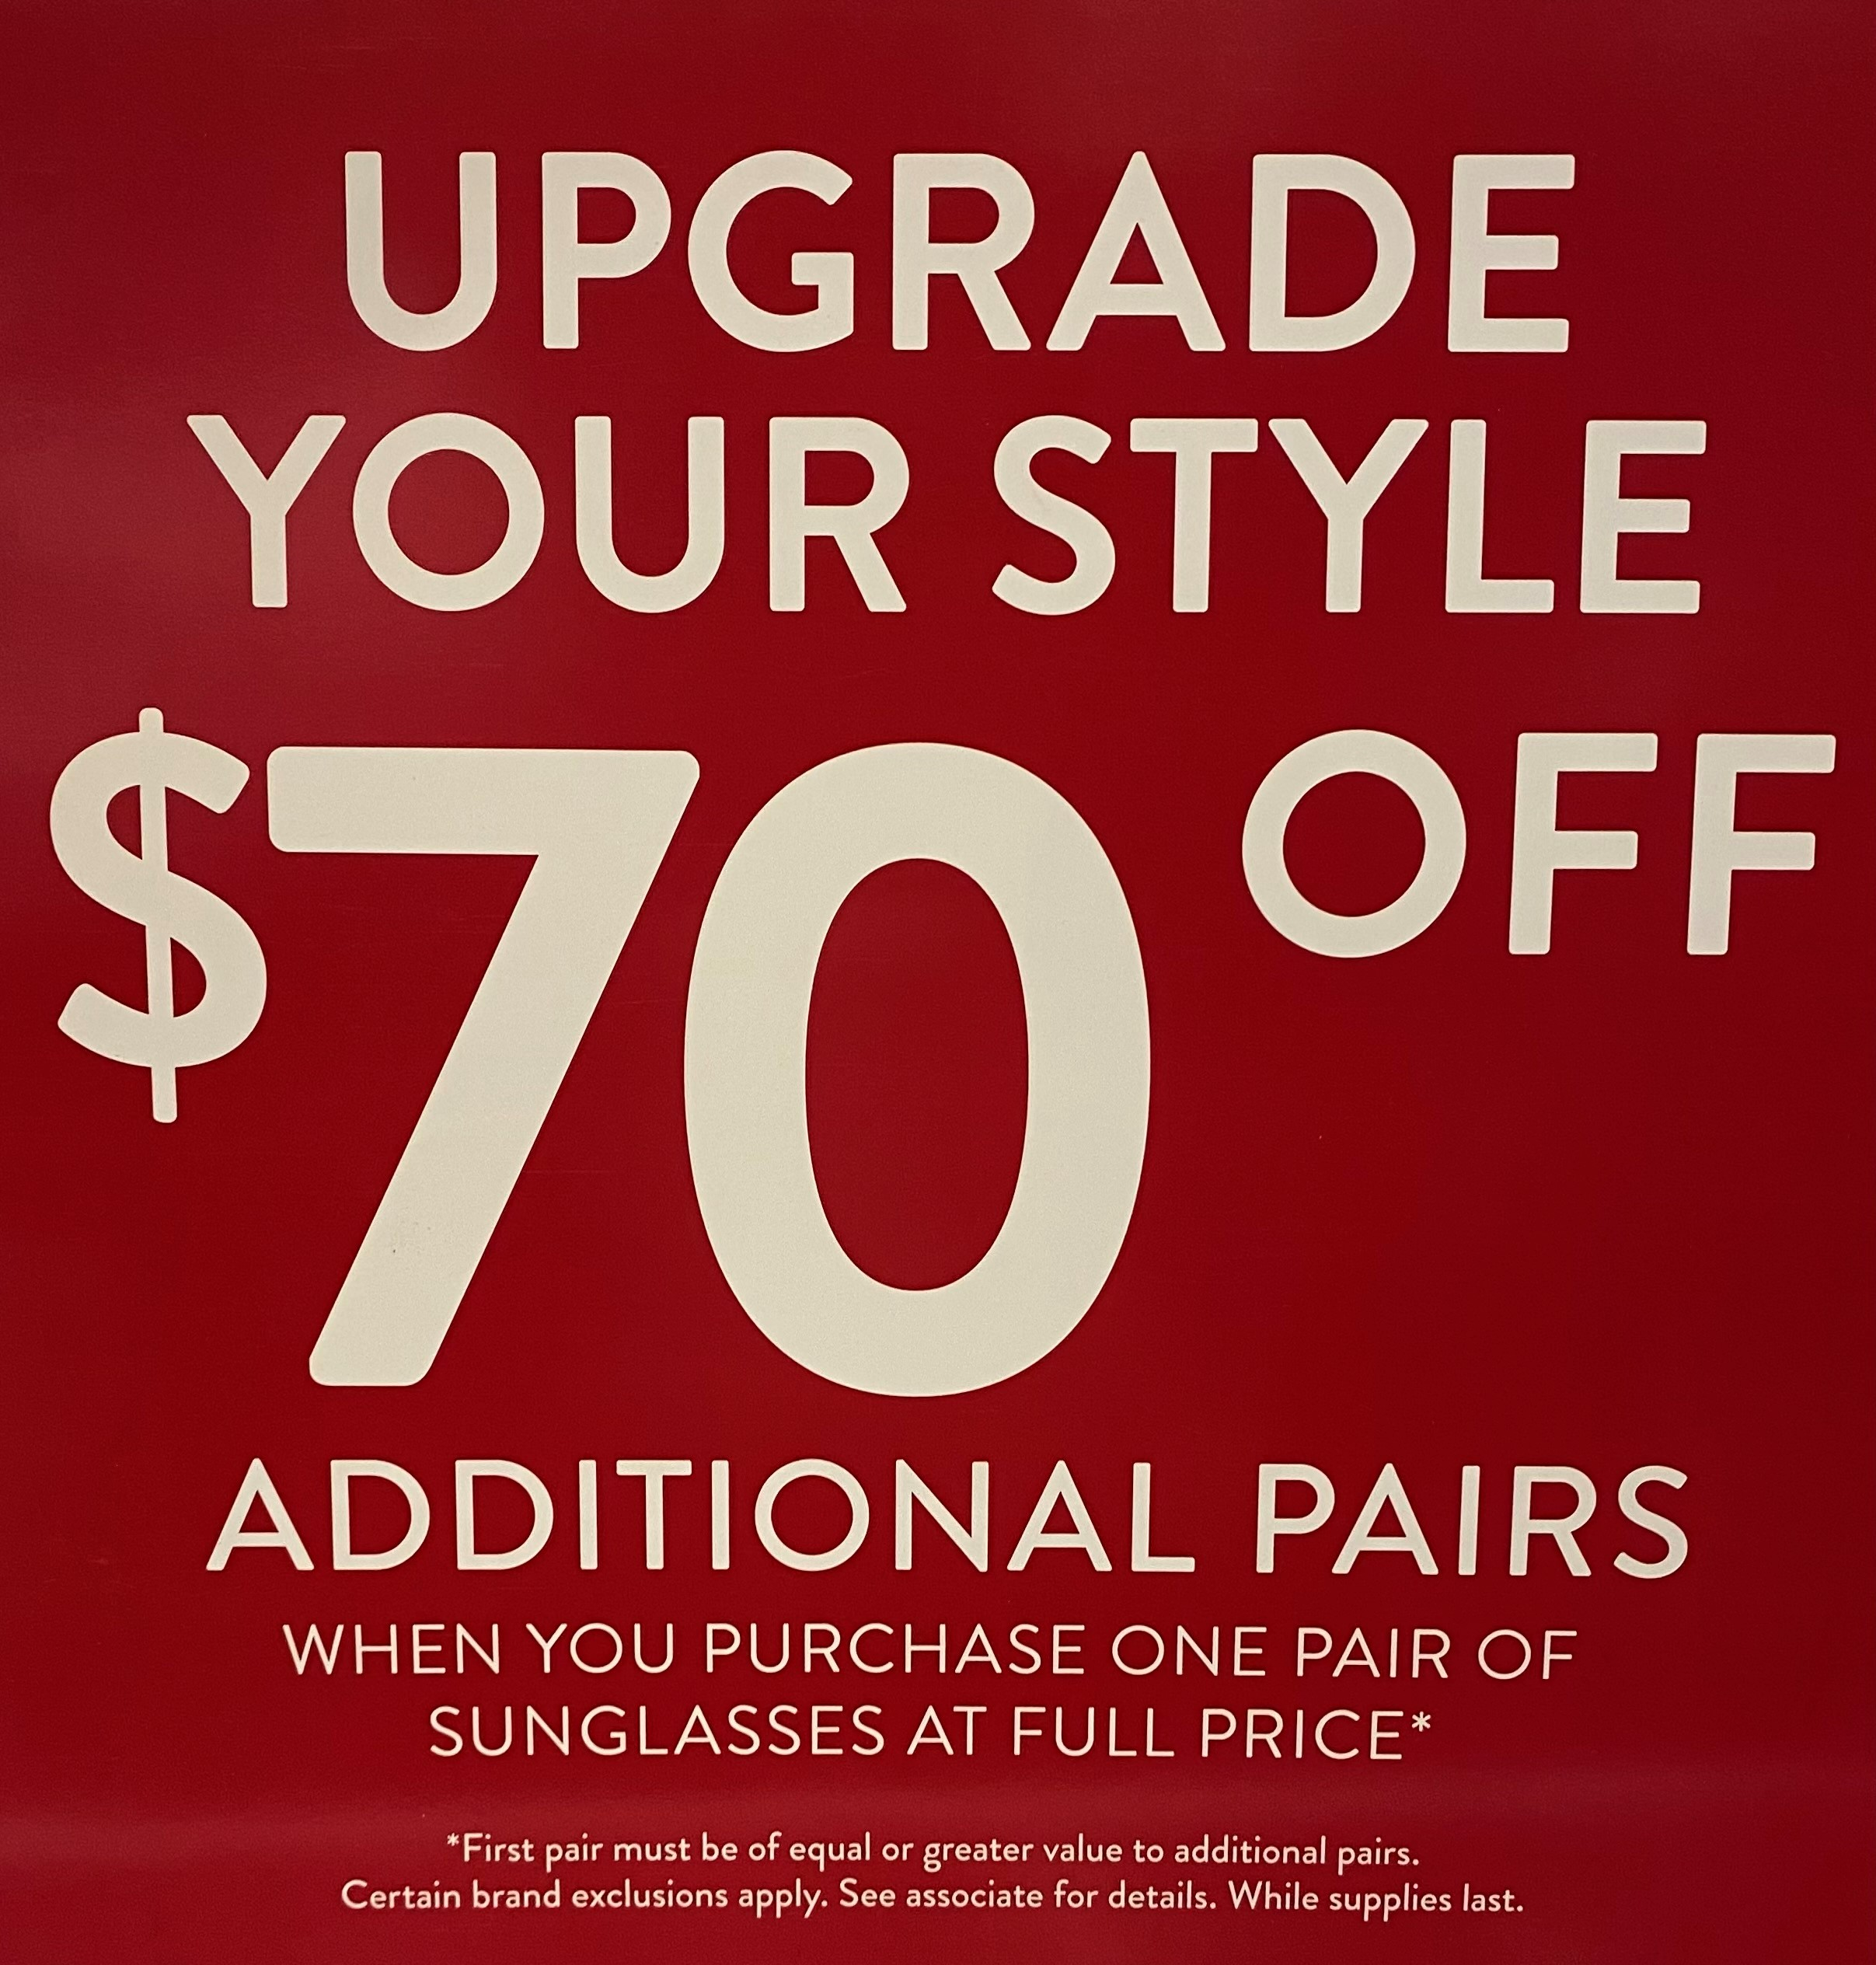 upgrade your style 70% off additional pairs when you purchase one pair of sunglasses at full price